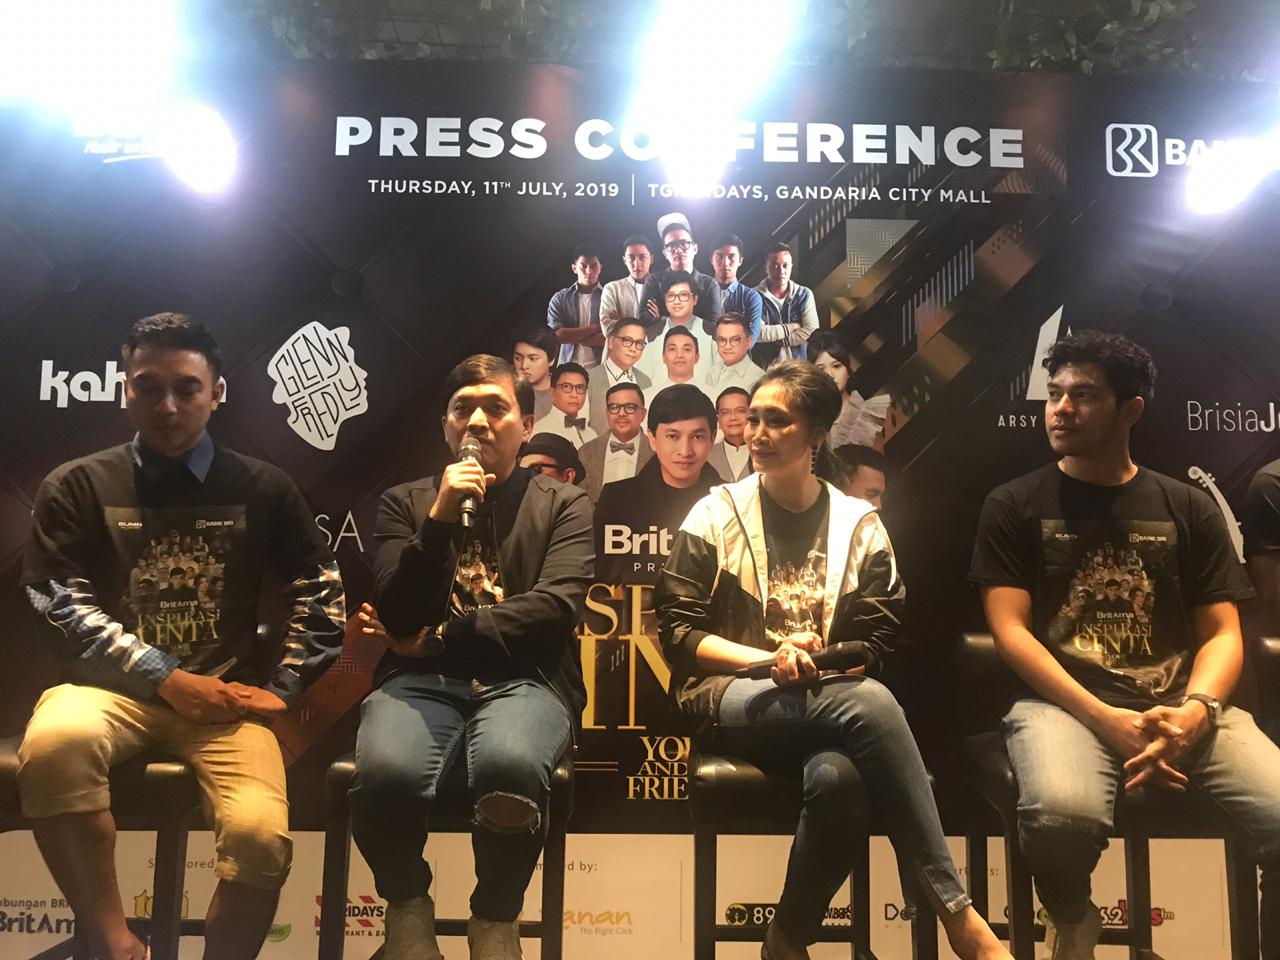 Menantikan Konser 'Inspirasi Cinta Yovie and His Friends' di Surabaya